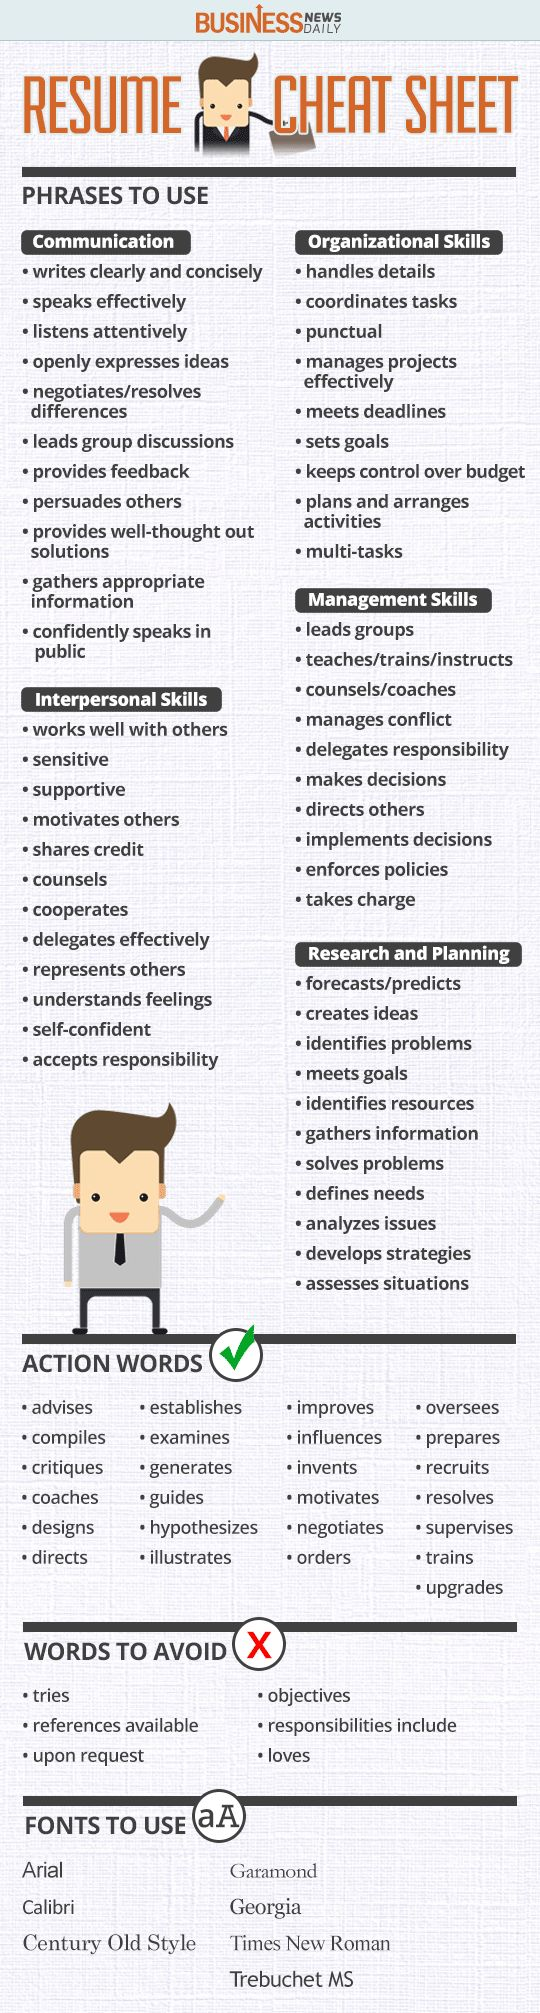 Opposenewapstandardsus  Terrific  Ideas About Resume On Pinterest  Cv Format Resume  With Outstanding Resume Cheat Sheet Infographic Andrews Almost Done With A Complete Unit On Employment Which With Comely Police Sergeant Resume Also Elementary Teacher Resume Samples In Addition Top  Resume Writing Services And Do I Need A Cover Letter For My Resume As Well As Resume Templates For Microsoft Word  Additionally Warehouse Job Description Resume From Pinterestcom With Opposenewapstandardsus  Outstanding  Ideas About Resume On Pinterest  Cv Format Resume  With Comely Resume Cheat Sheet Infographic Andrews Almost Done With A Complete Unit On Employment Which And Terrific Police Sergeant Resume Also Elementary Teacher Resume Samples In Addition Top  Resume Writing Services From Pinterestcom